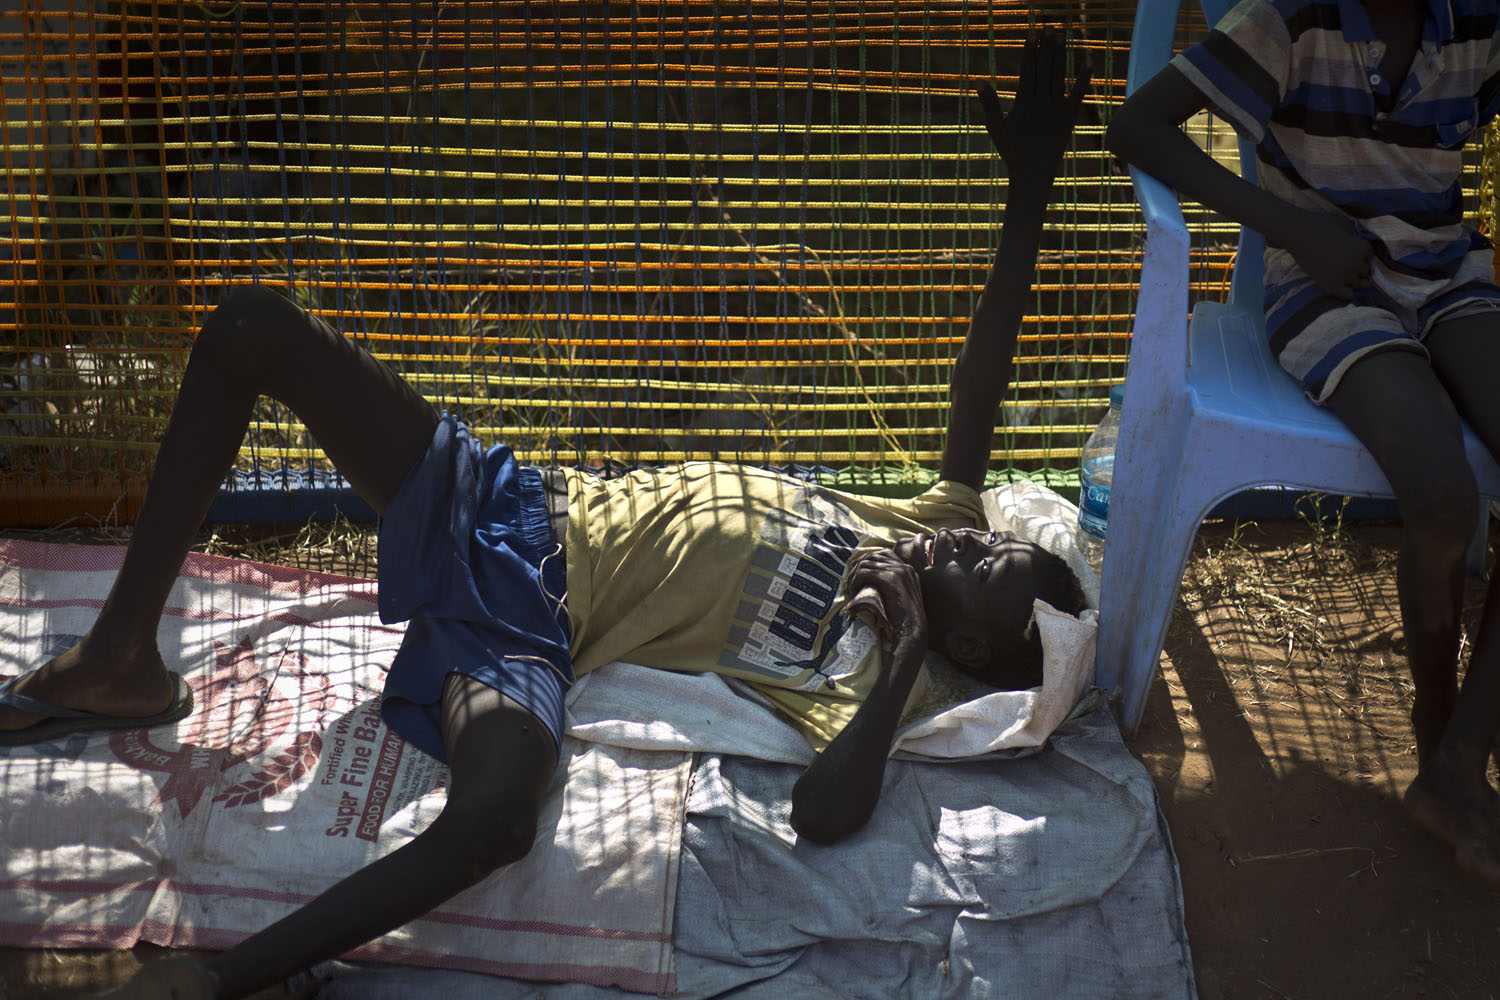 Dec. 27, 2013. A displaced boy lies down against a fence inside a United Nations compound, home to thousands of people displaced by the recent fighting in Juba, South Sudan.